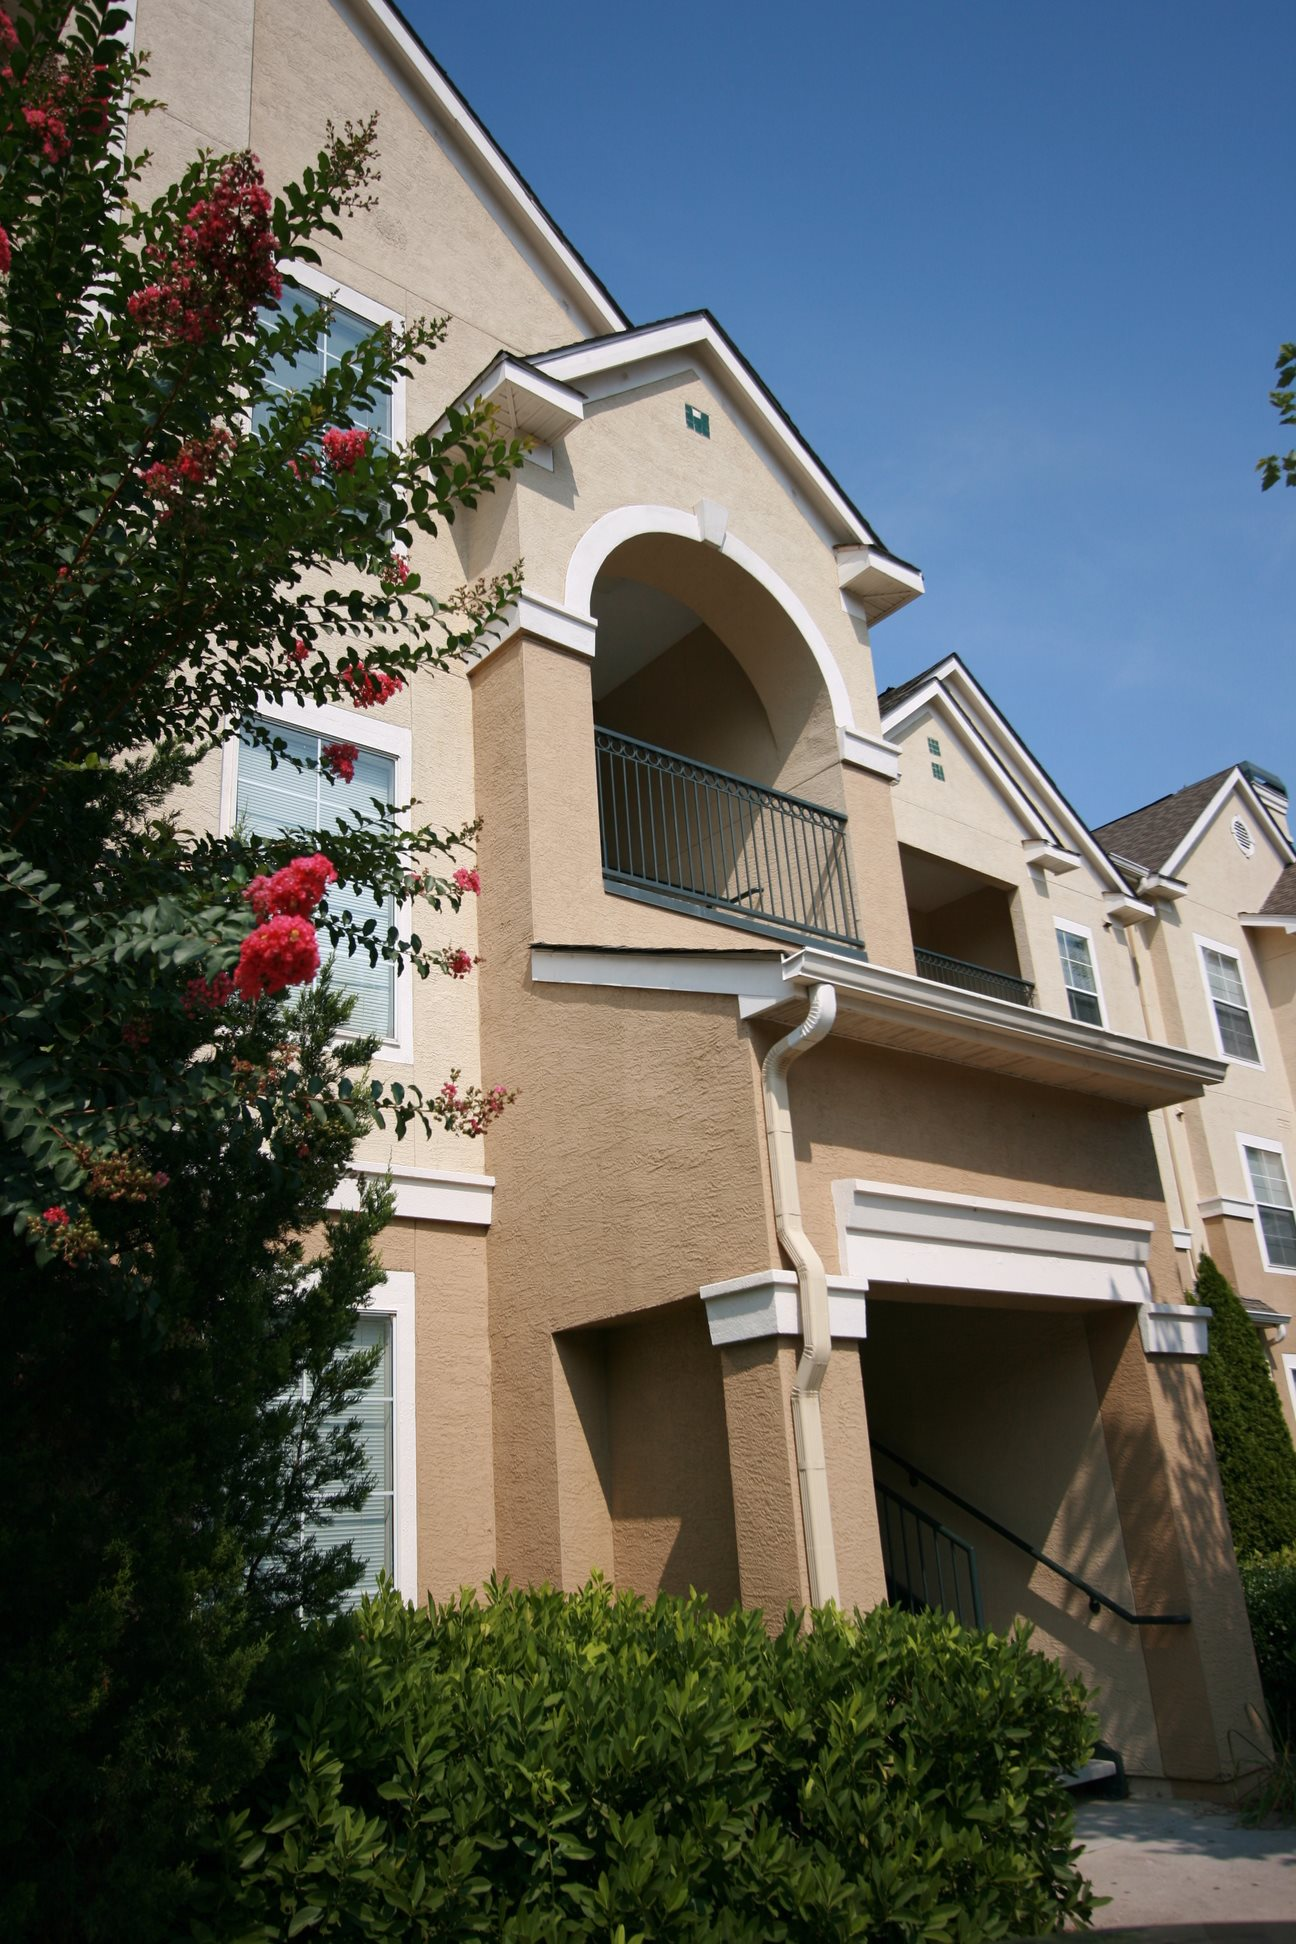 Grande Club, Duluth, GA,30096 have Private Patios and Balconies